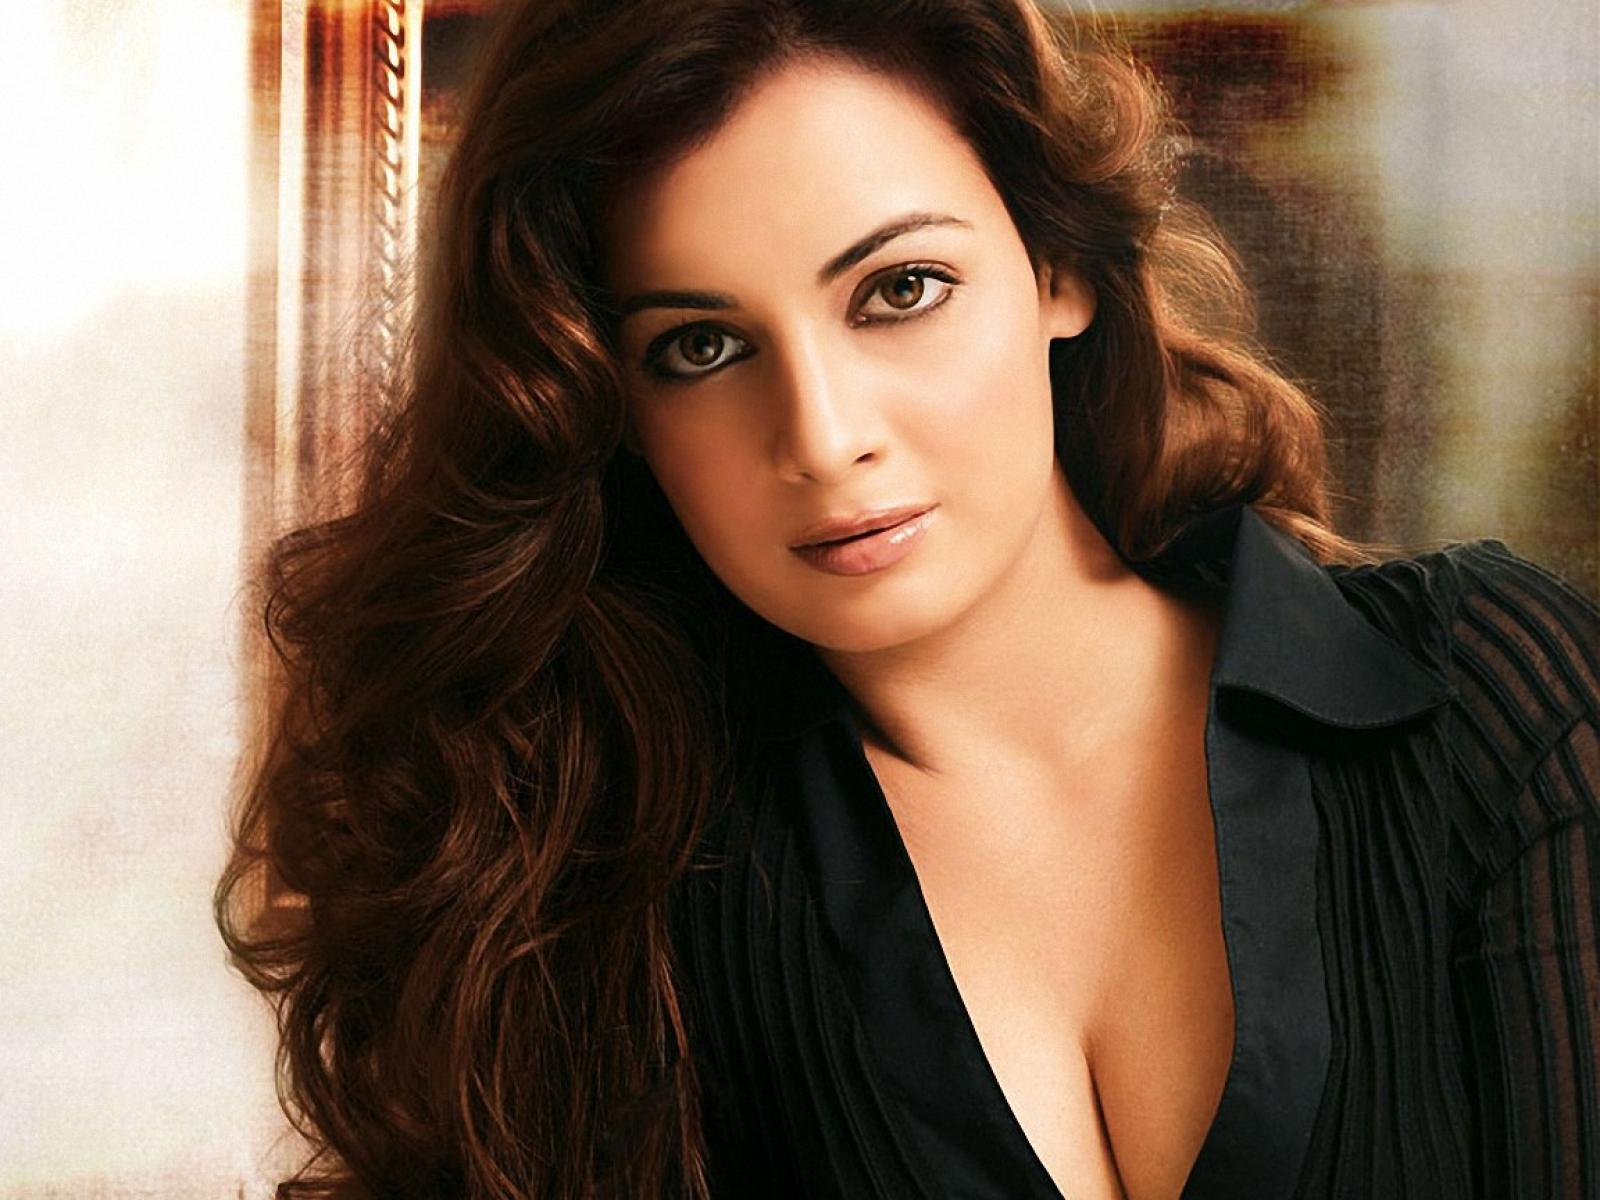 Bollywood Hot Actress Dia Mirza to get married in October Bollywood Hot Actress Dia Mirza to get married in October